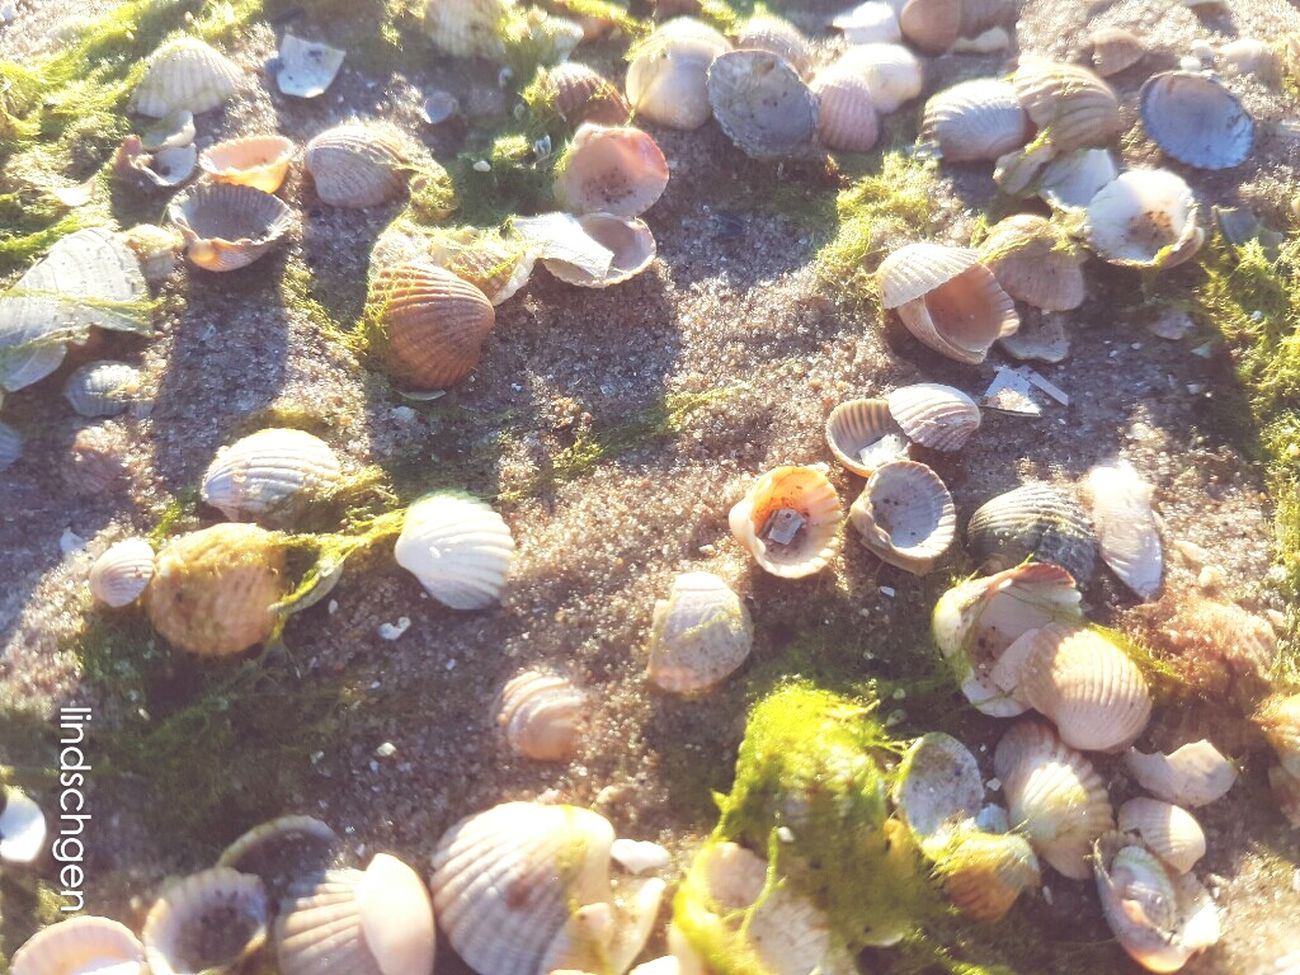 Schönheiten am Strand - Herzmuscheln 💟🐚💟 Beach Sea Water Nature Beauty In Nature Shells🐚 Sand Sonne, Strand Und Meer EyeEm Best Shots Urlaub Muscheln EyeEm Best Shots - Nature Glücklich Baltic Sea Ostsee EeYem Best Shots EyeEm Nature Lover Day Steine Und Meer Nature In Beauty Strand Sand & Sea Beauty In Nature Nature